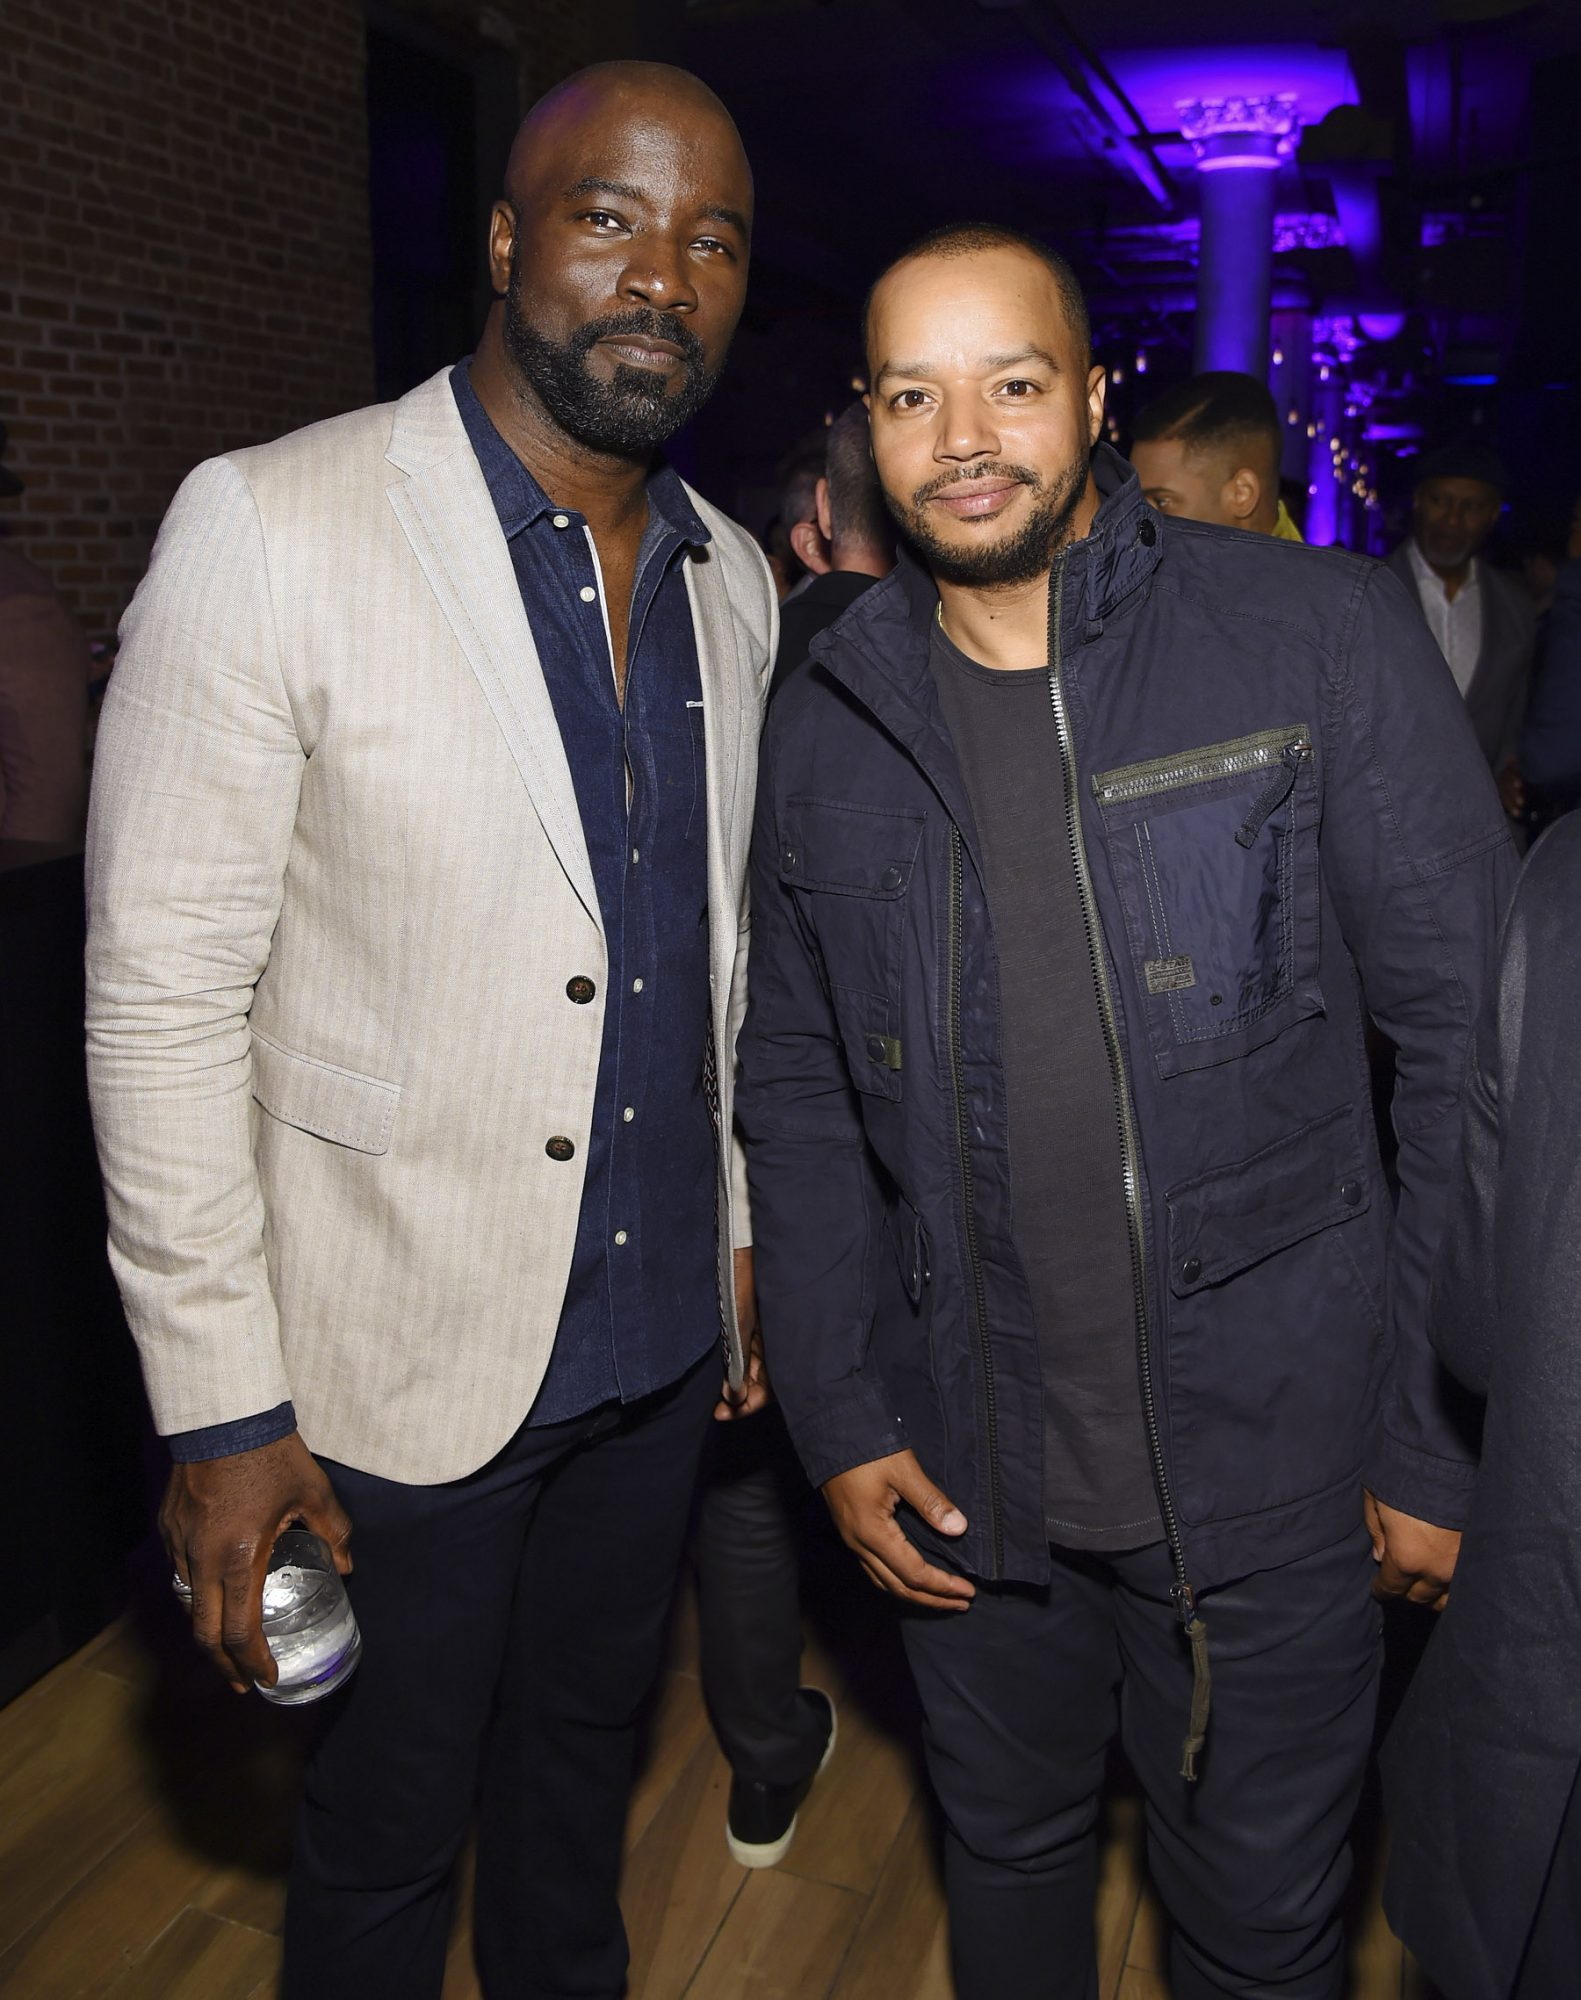 NEW YORK, NEW YORK - MAY 13: Mike Colter and Donald Faison attend the Entertainment Weekly & PEOPLE New York Upfronts Party on May 13, 2019 in New York City. (Photo by Larry Busacca/Getty Images for Entertainment Weekly & PEOPLE)